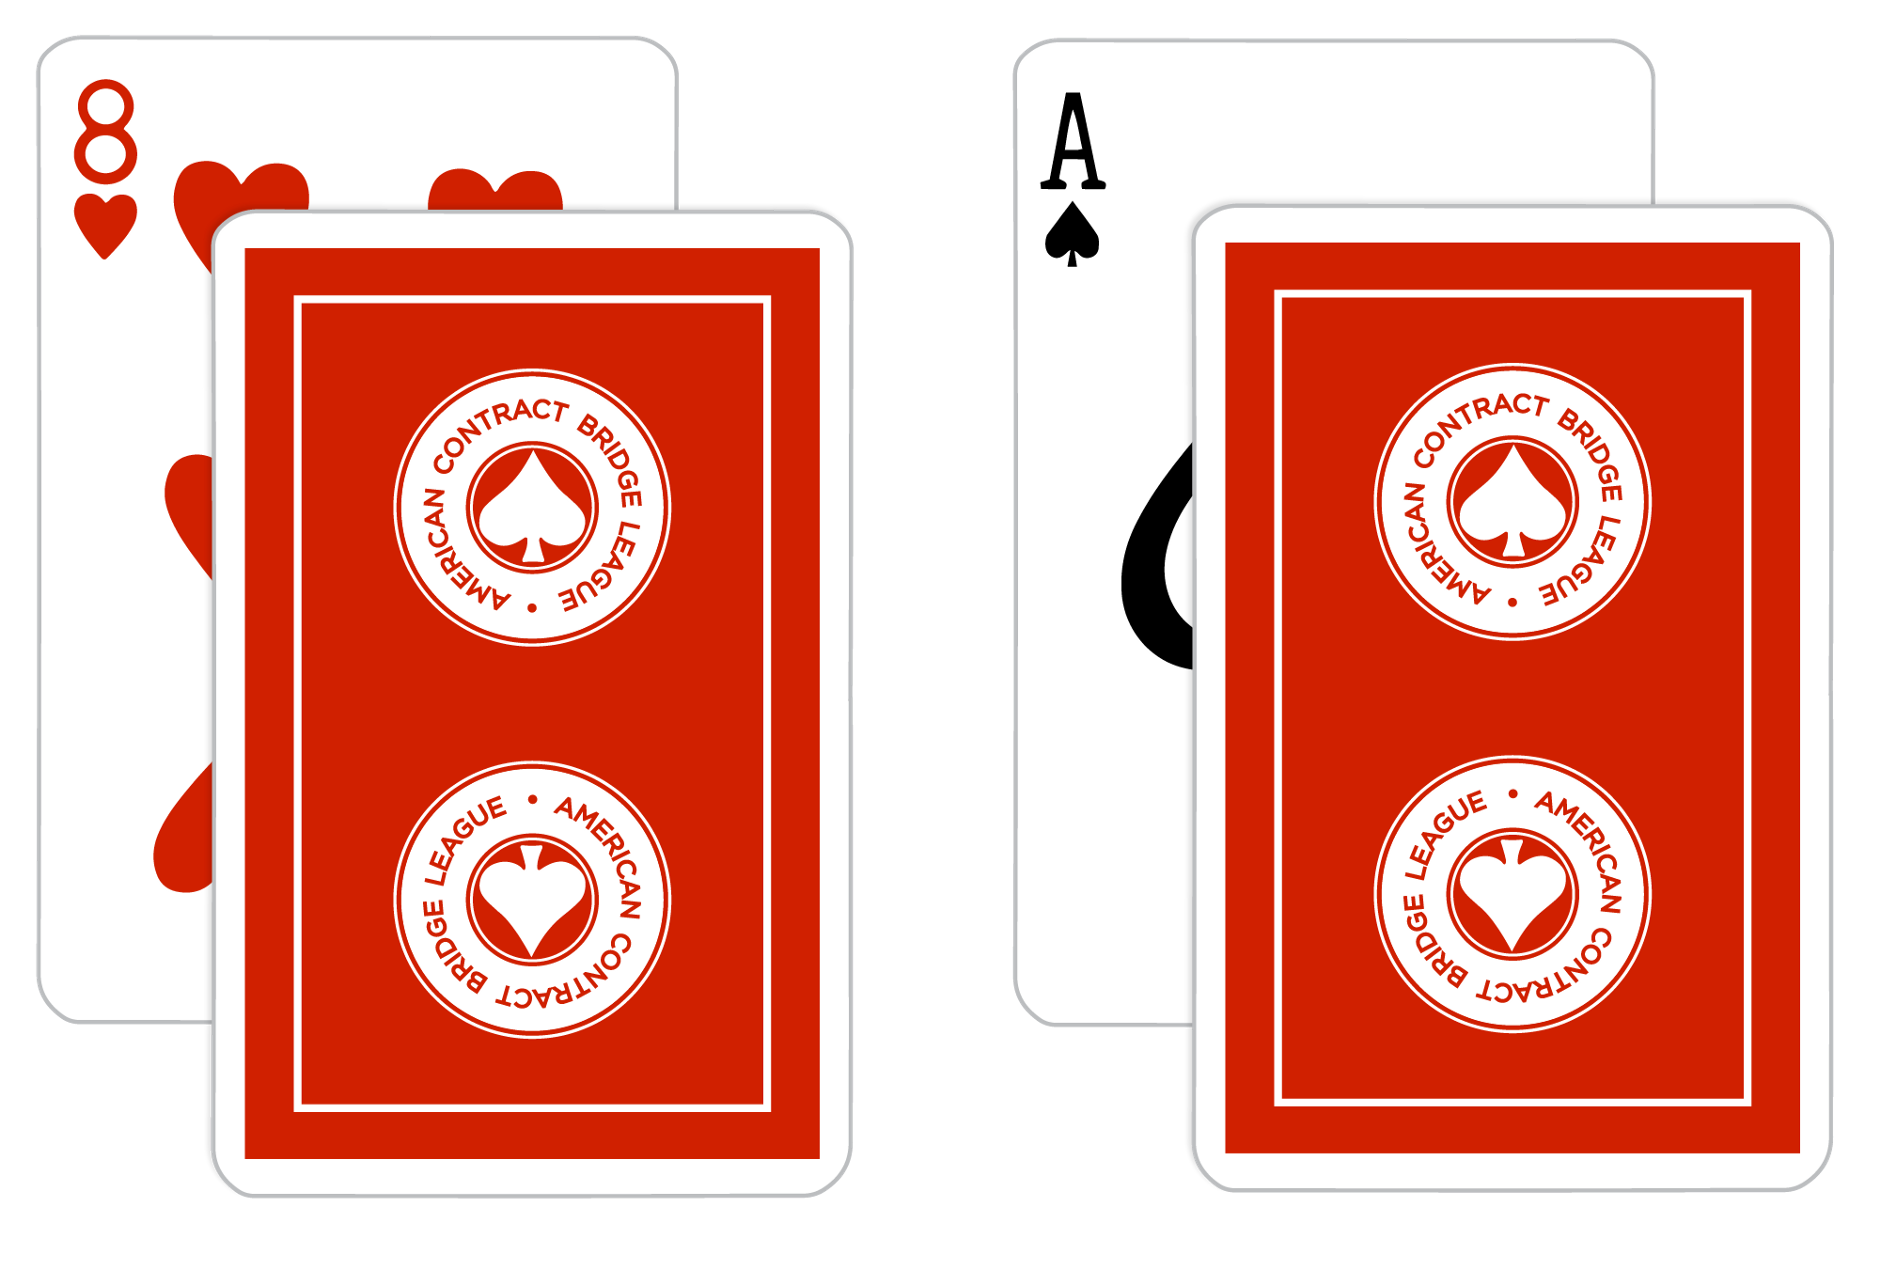 Imagine your dataset contains 2 images of cards facing down. You're feeling optimistic and you want to build a model to predict the suit and value of each card. The first card is labeled as ace of spades and the other is labeled as 8 of hearts. Here, the exact same features (an image of a card facing down) can be linked to different predictions (either ace of spades or 8 of hearts). Therefore, this dataset is subject to lots of inherent noise.